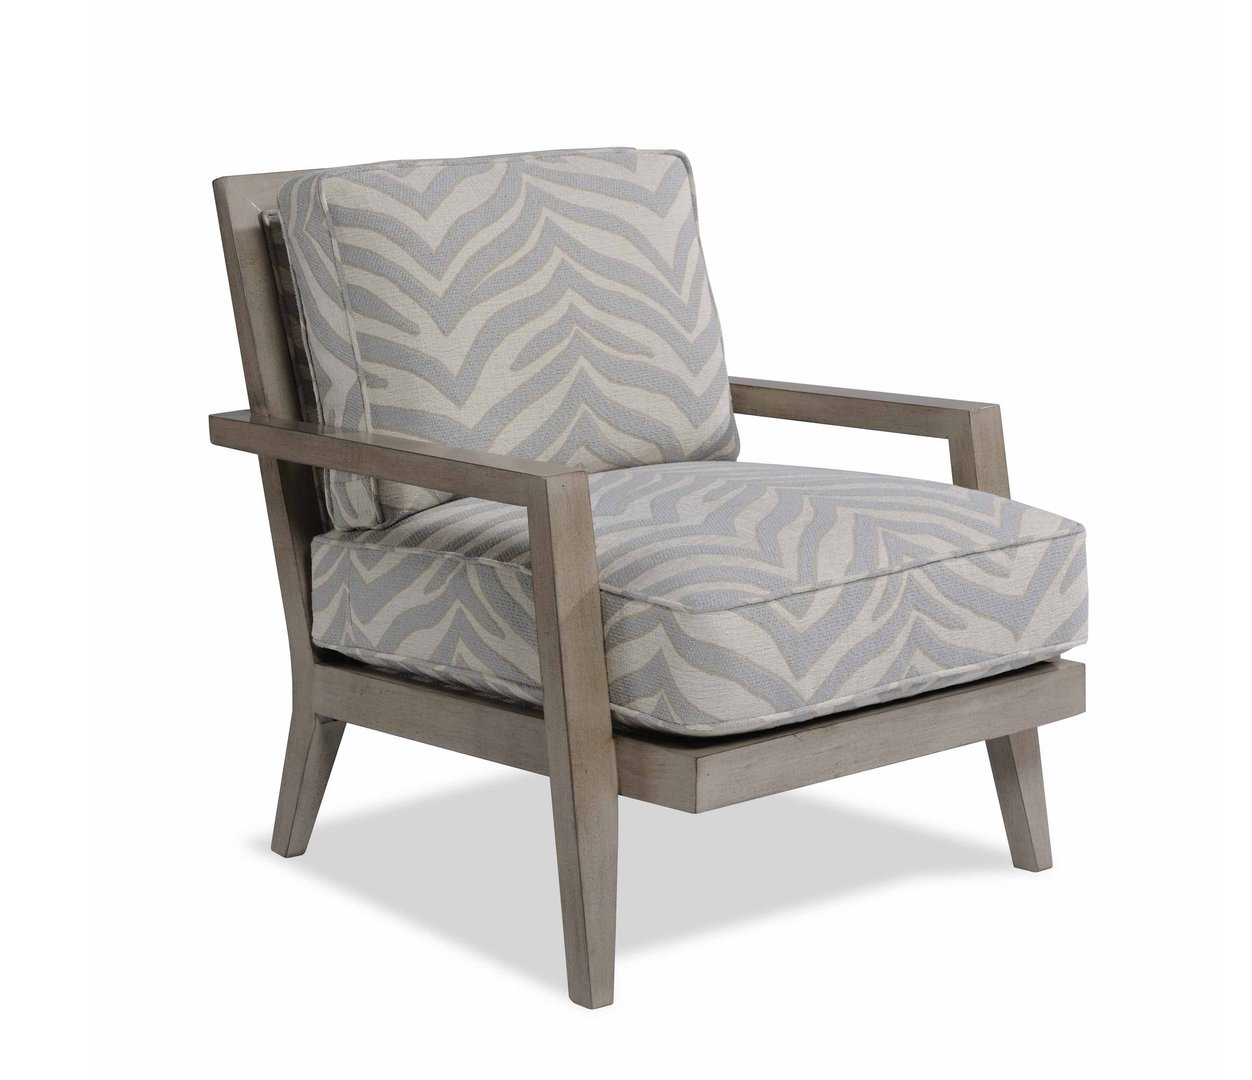 Purcell Chair Image